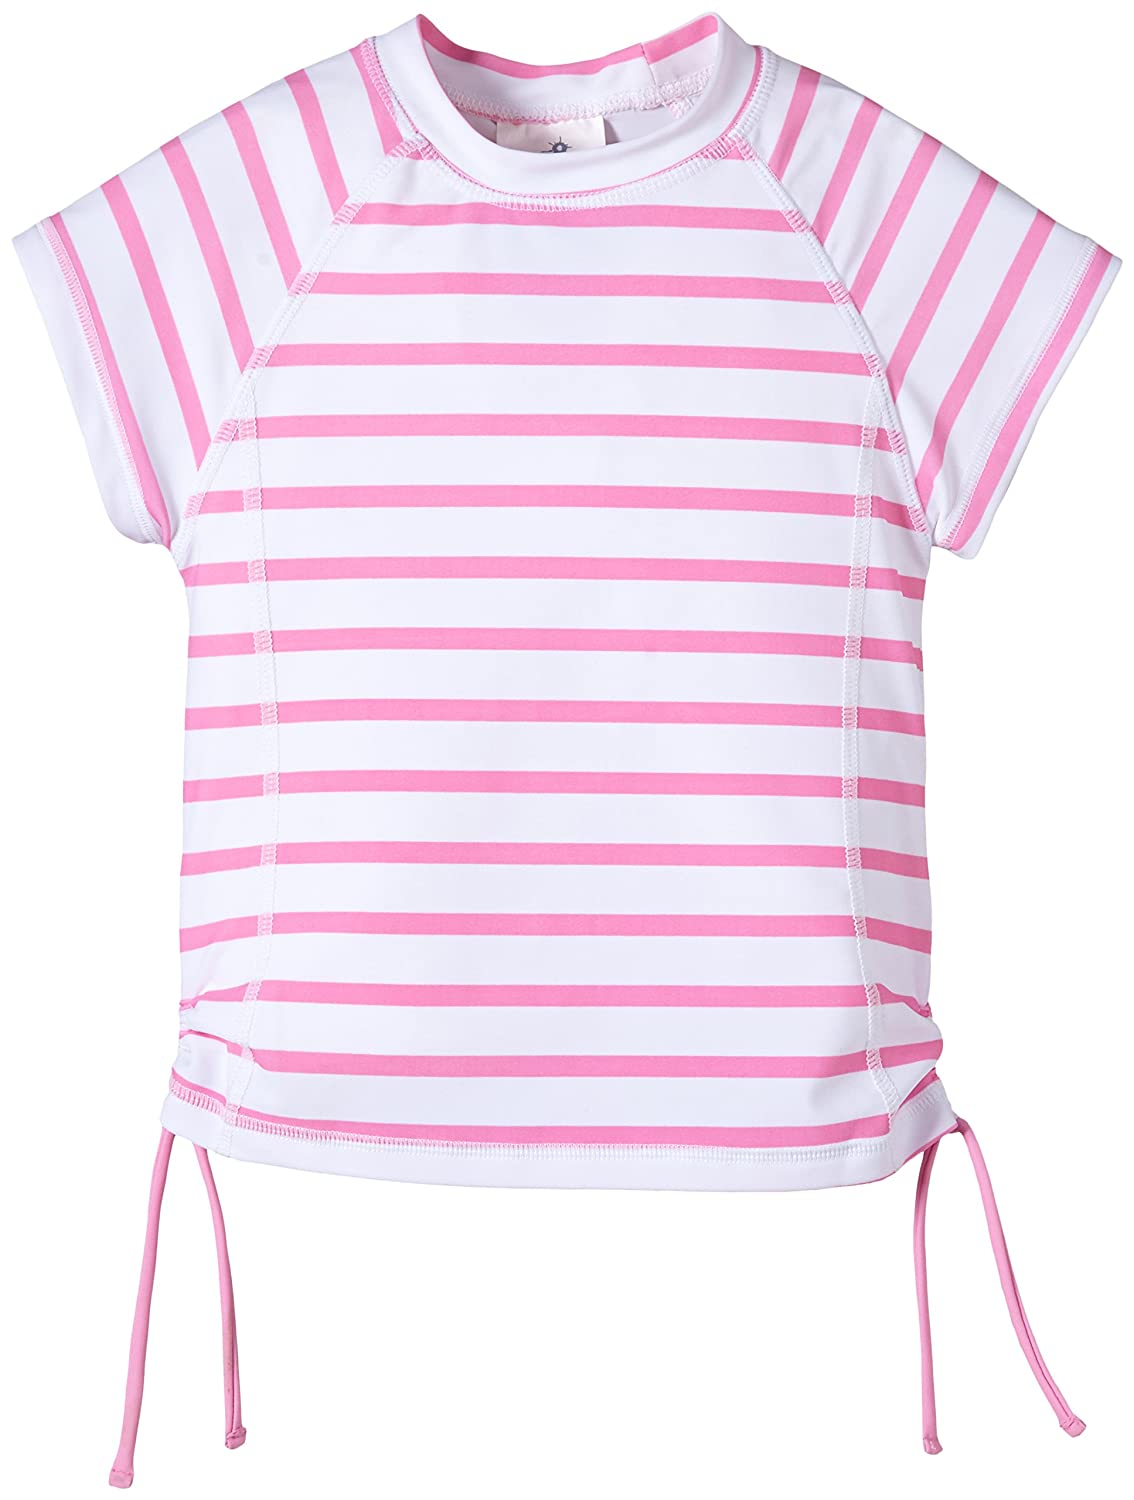 Snapper Rock Pink/ White Stripe SS Girls Rash Top